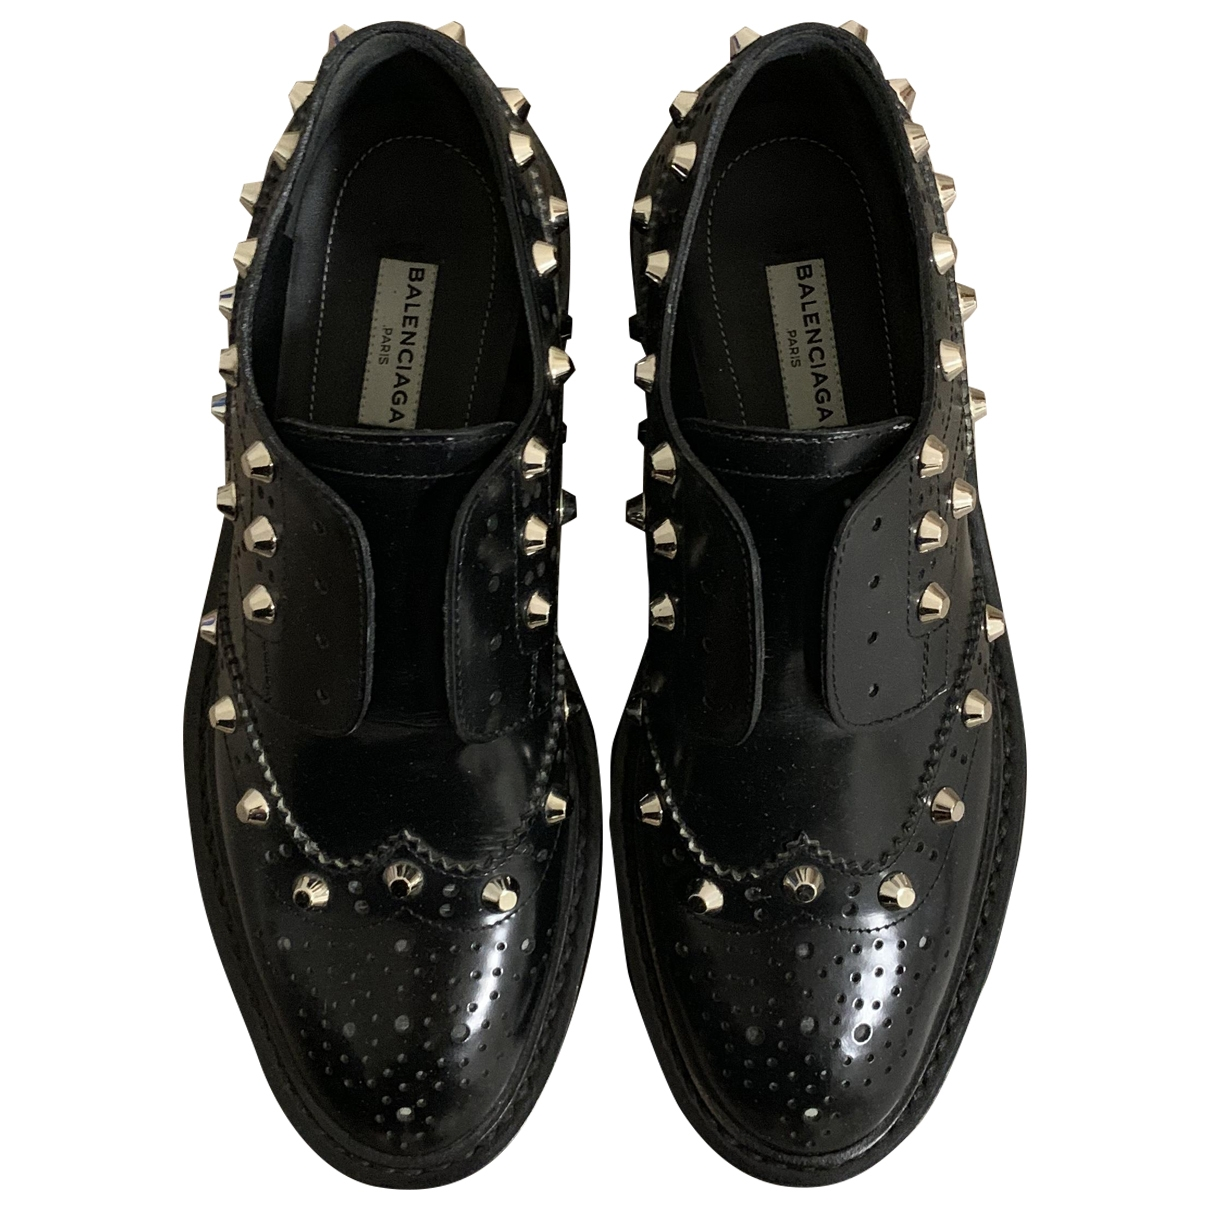 Balenciaga \N Black Leather Lace ups for Women 36 EU